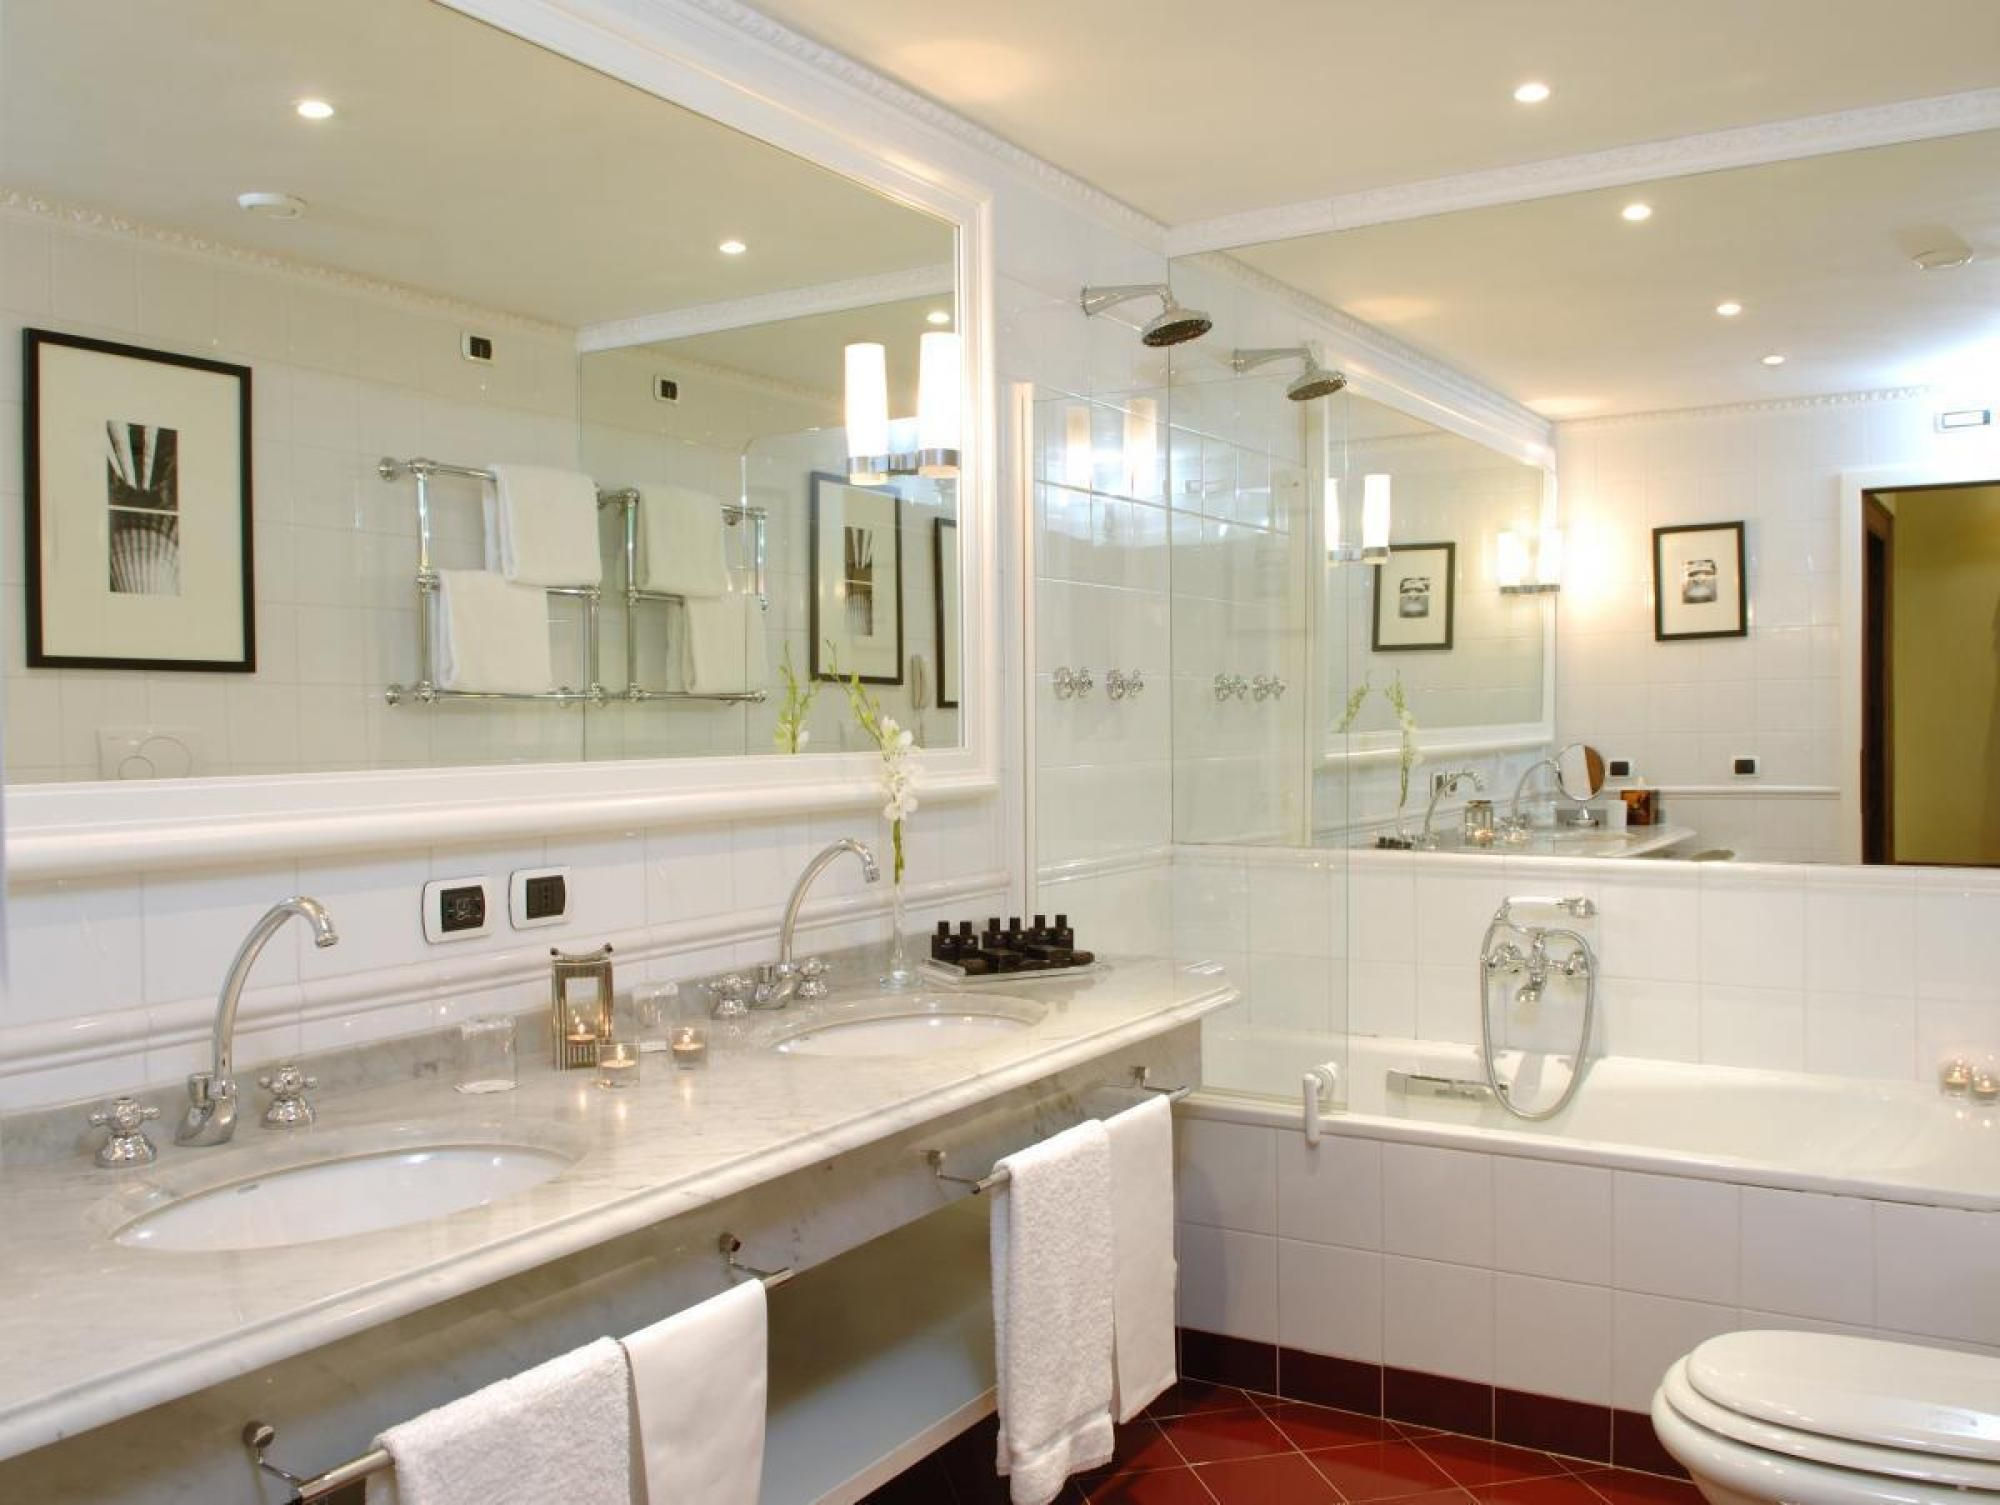 Adorable Luxury Bathroom Style With White Granite Countertop